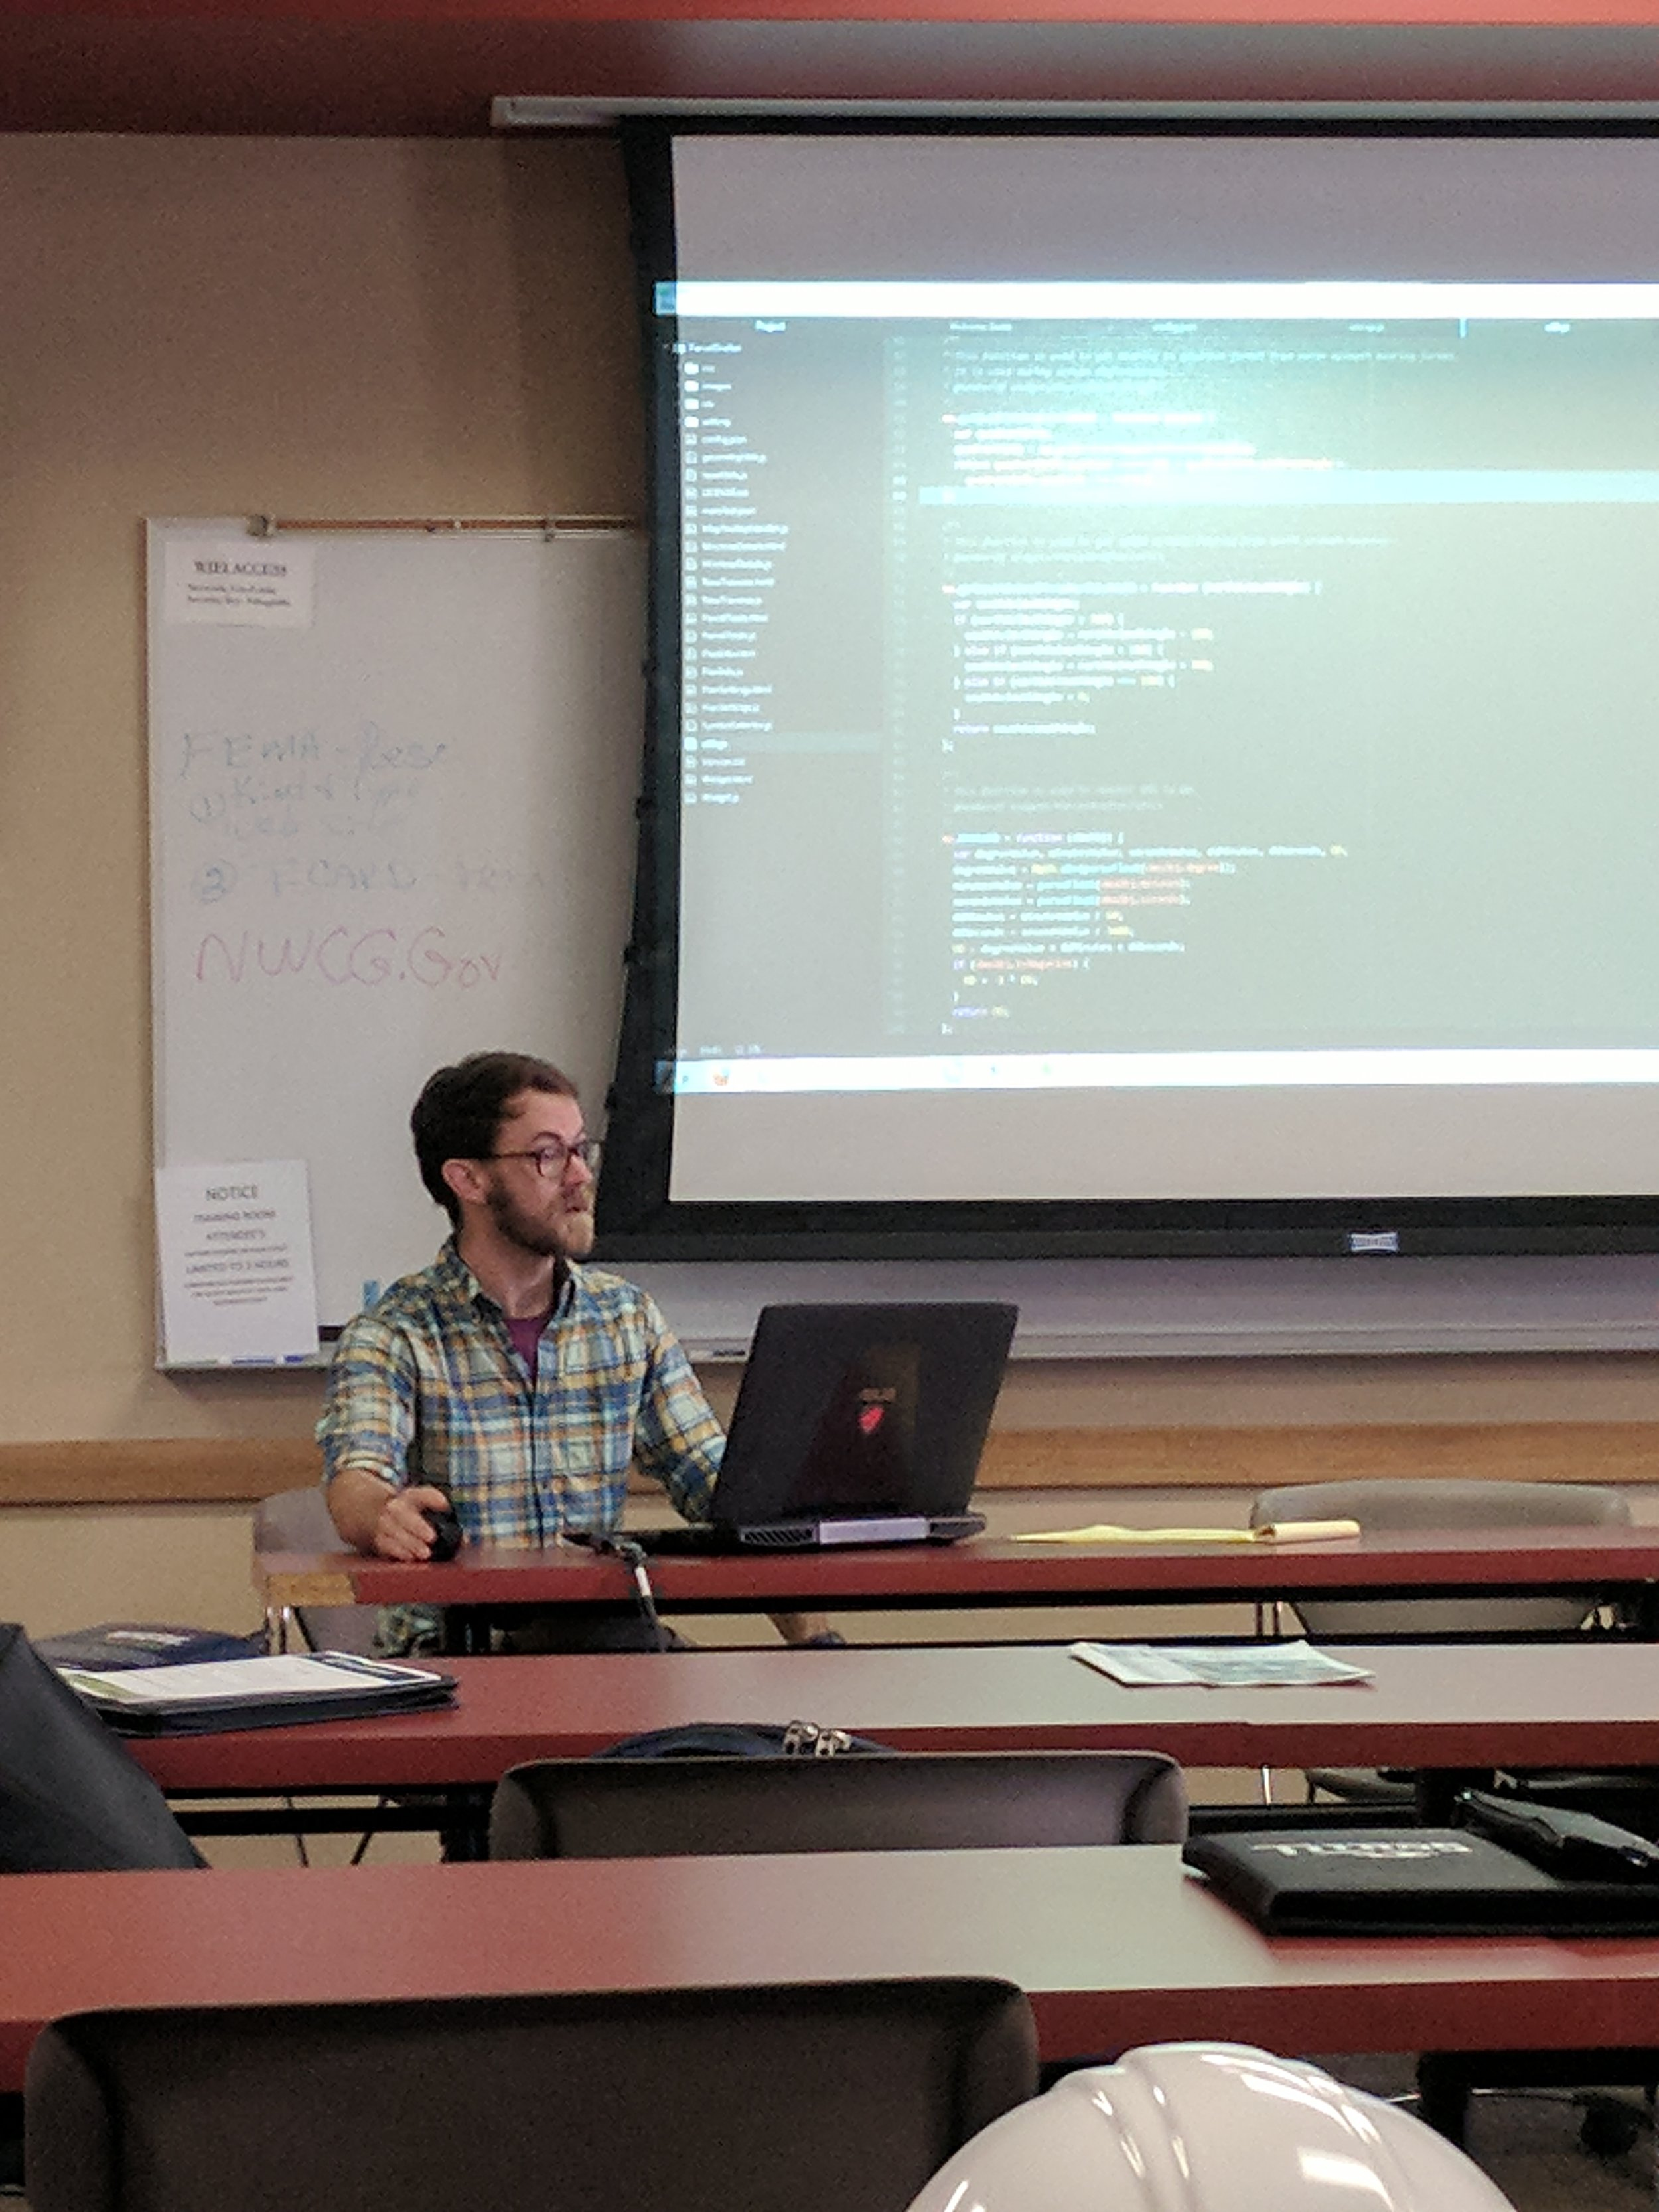 Chris Colney from Grant County, WI outlines the process of creating Esri web applications from templates, and how it helps him in his position as a GIS Specialist